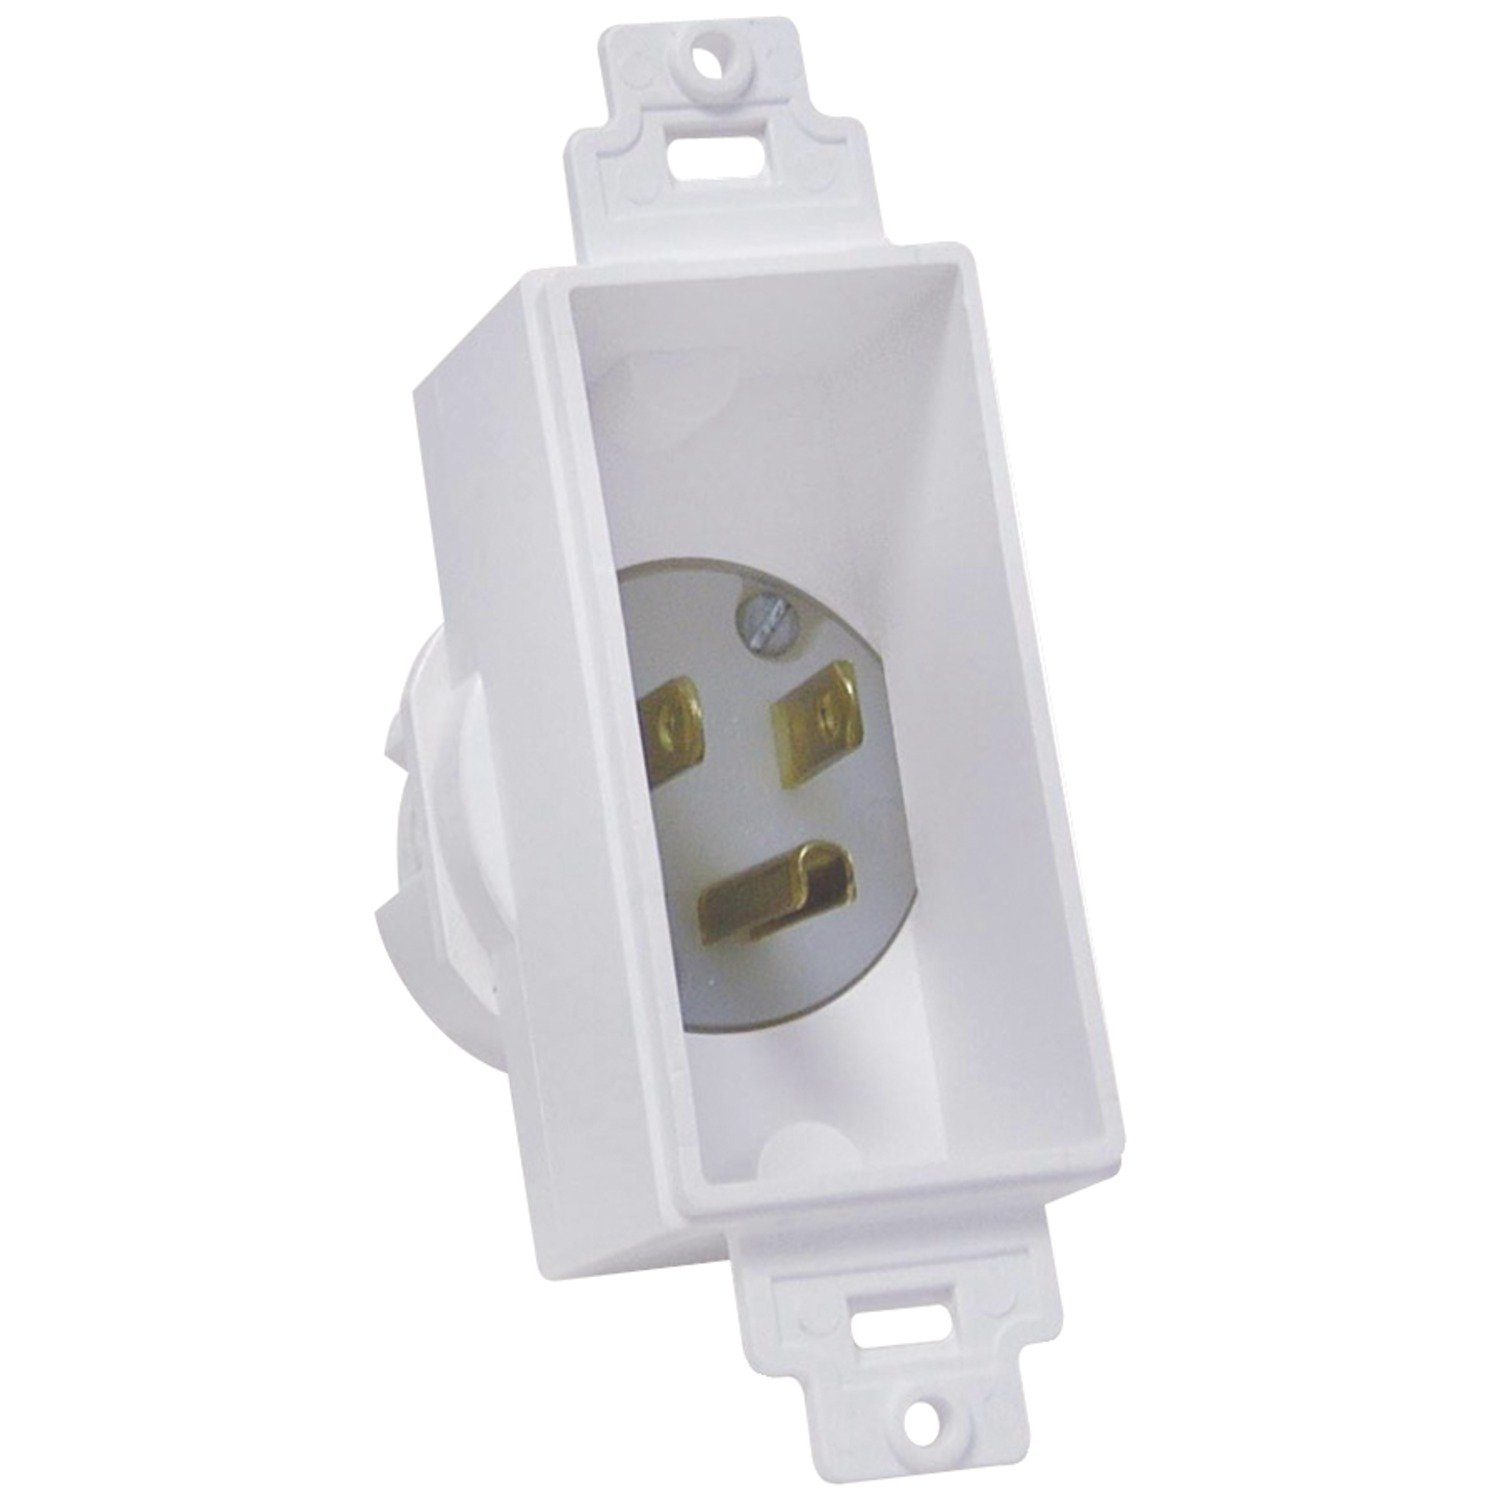 Home Wiring Wall Plate Midlite Mdt4642w Single Gang Decor Recessed Power Inlet Audio Theater